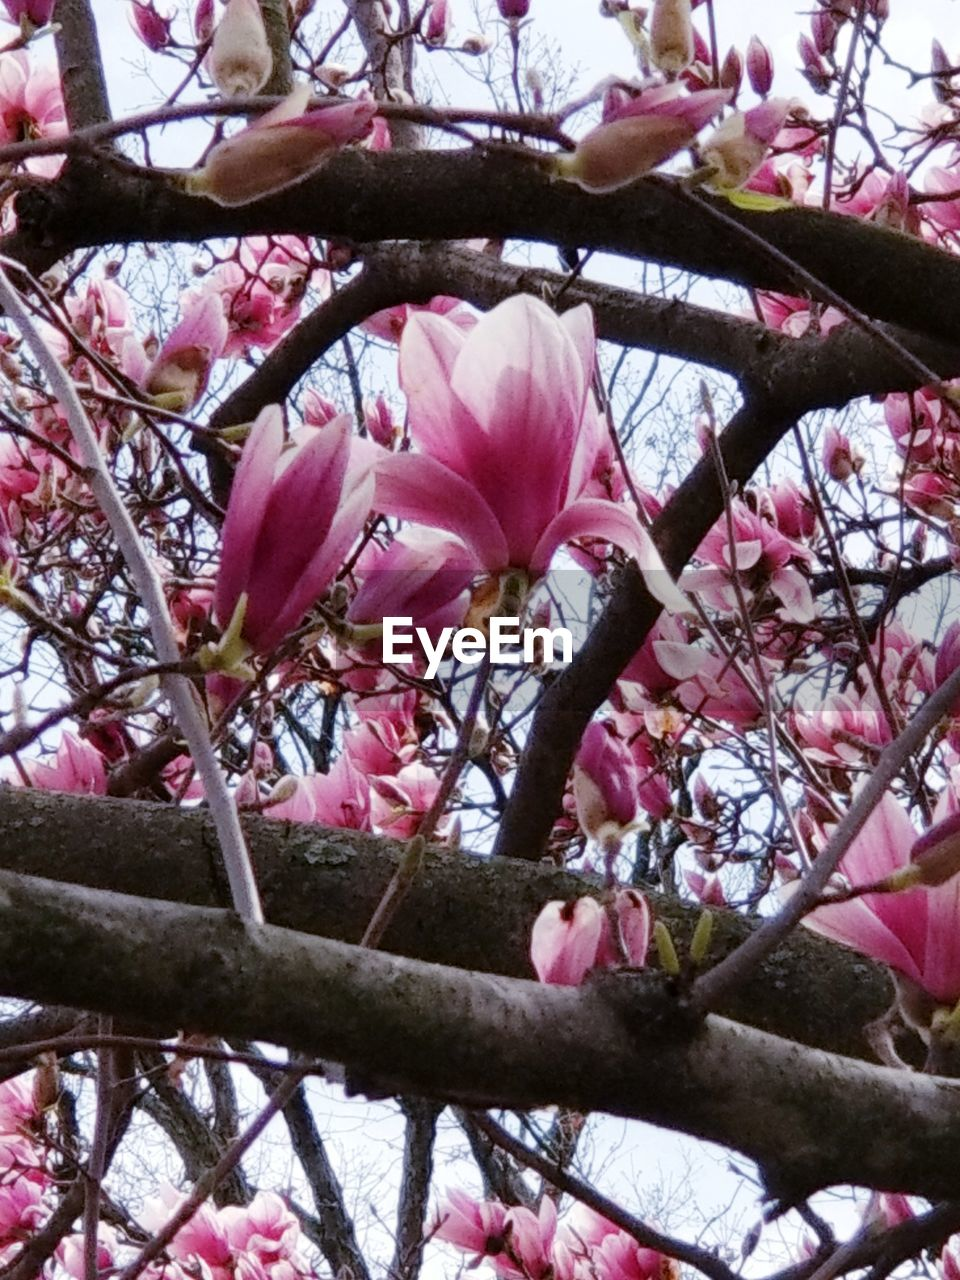 flower, flowering plant, plant, tree, freshness, pink color, branch, beauty in nature, blossom, growth, fragility, vulnerability, springtime, low angle view, day, nature, close-up, no people, twig, cherry blossom, outdoors, cherry tree, flower head, spring, pollen